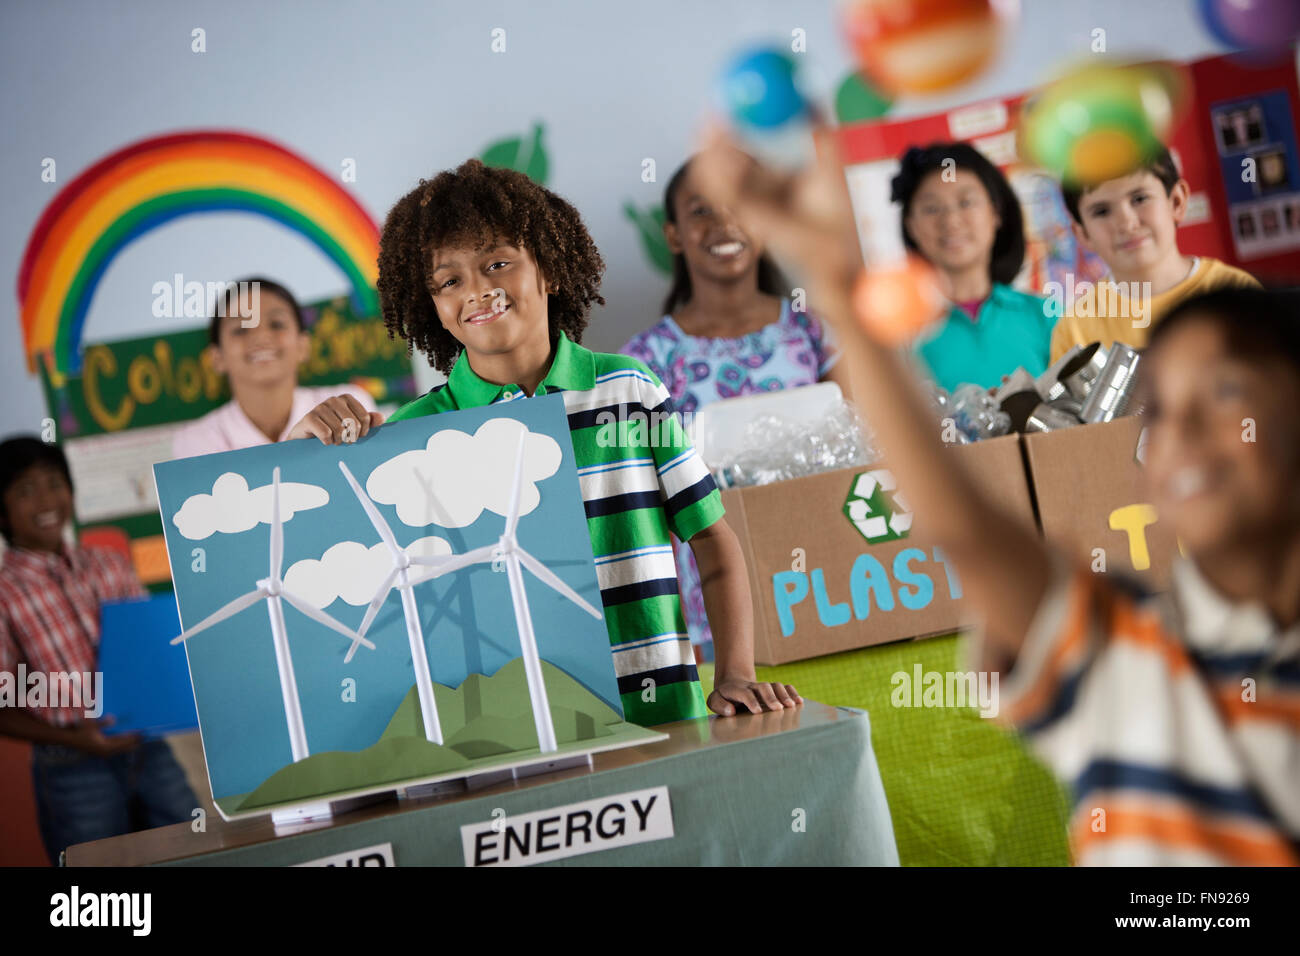 a class of children at a green science fair event with